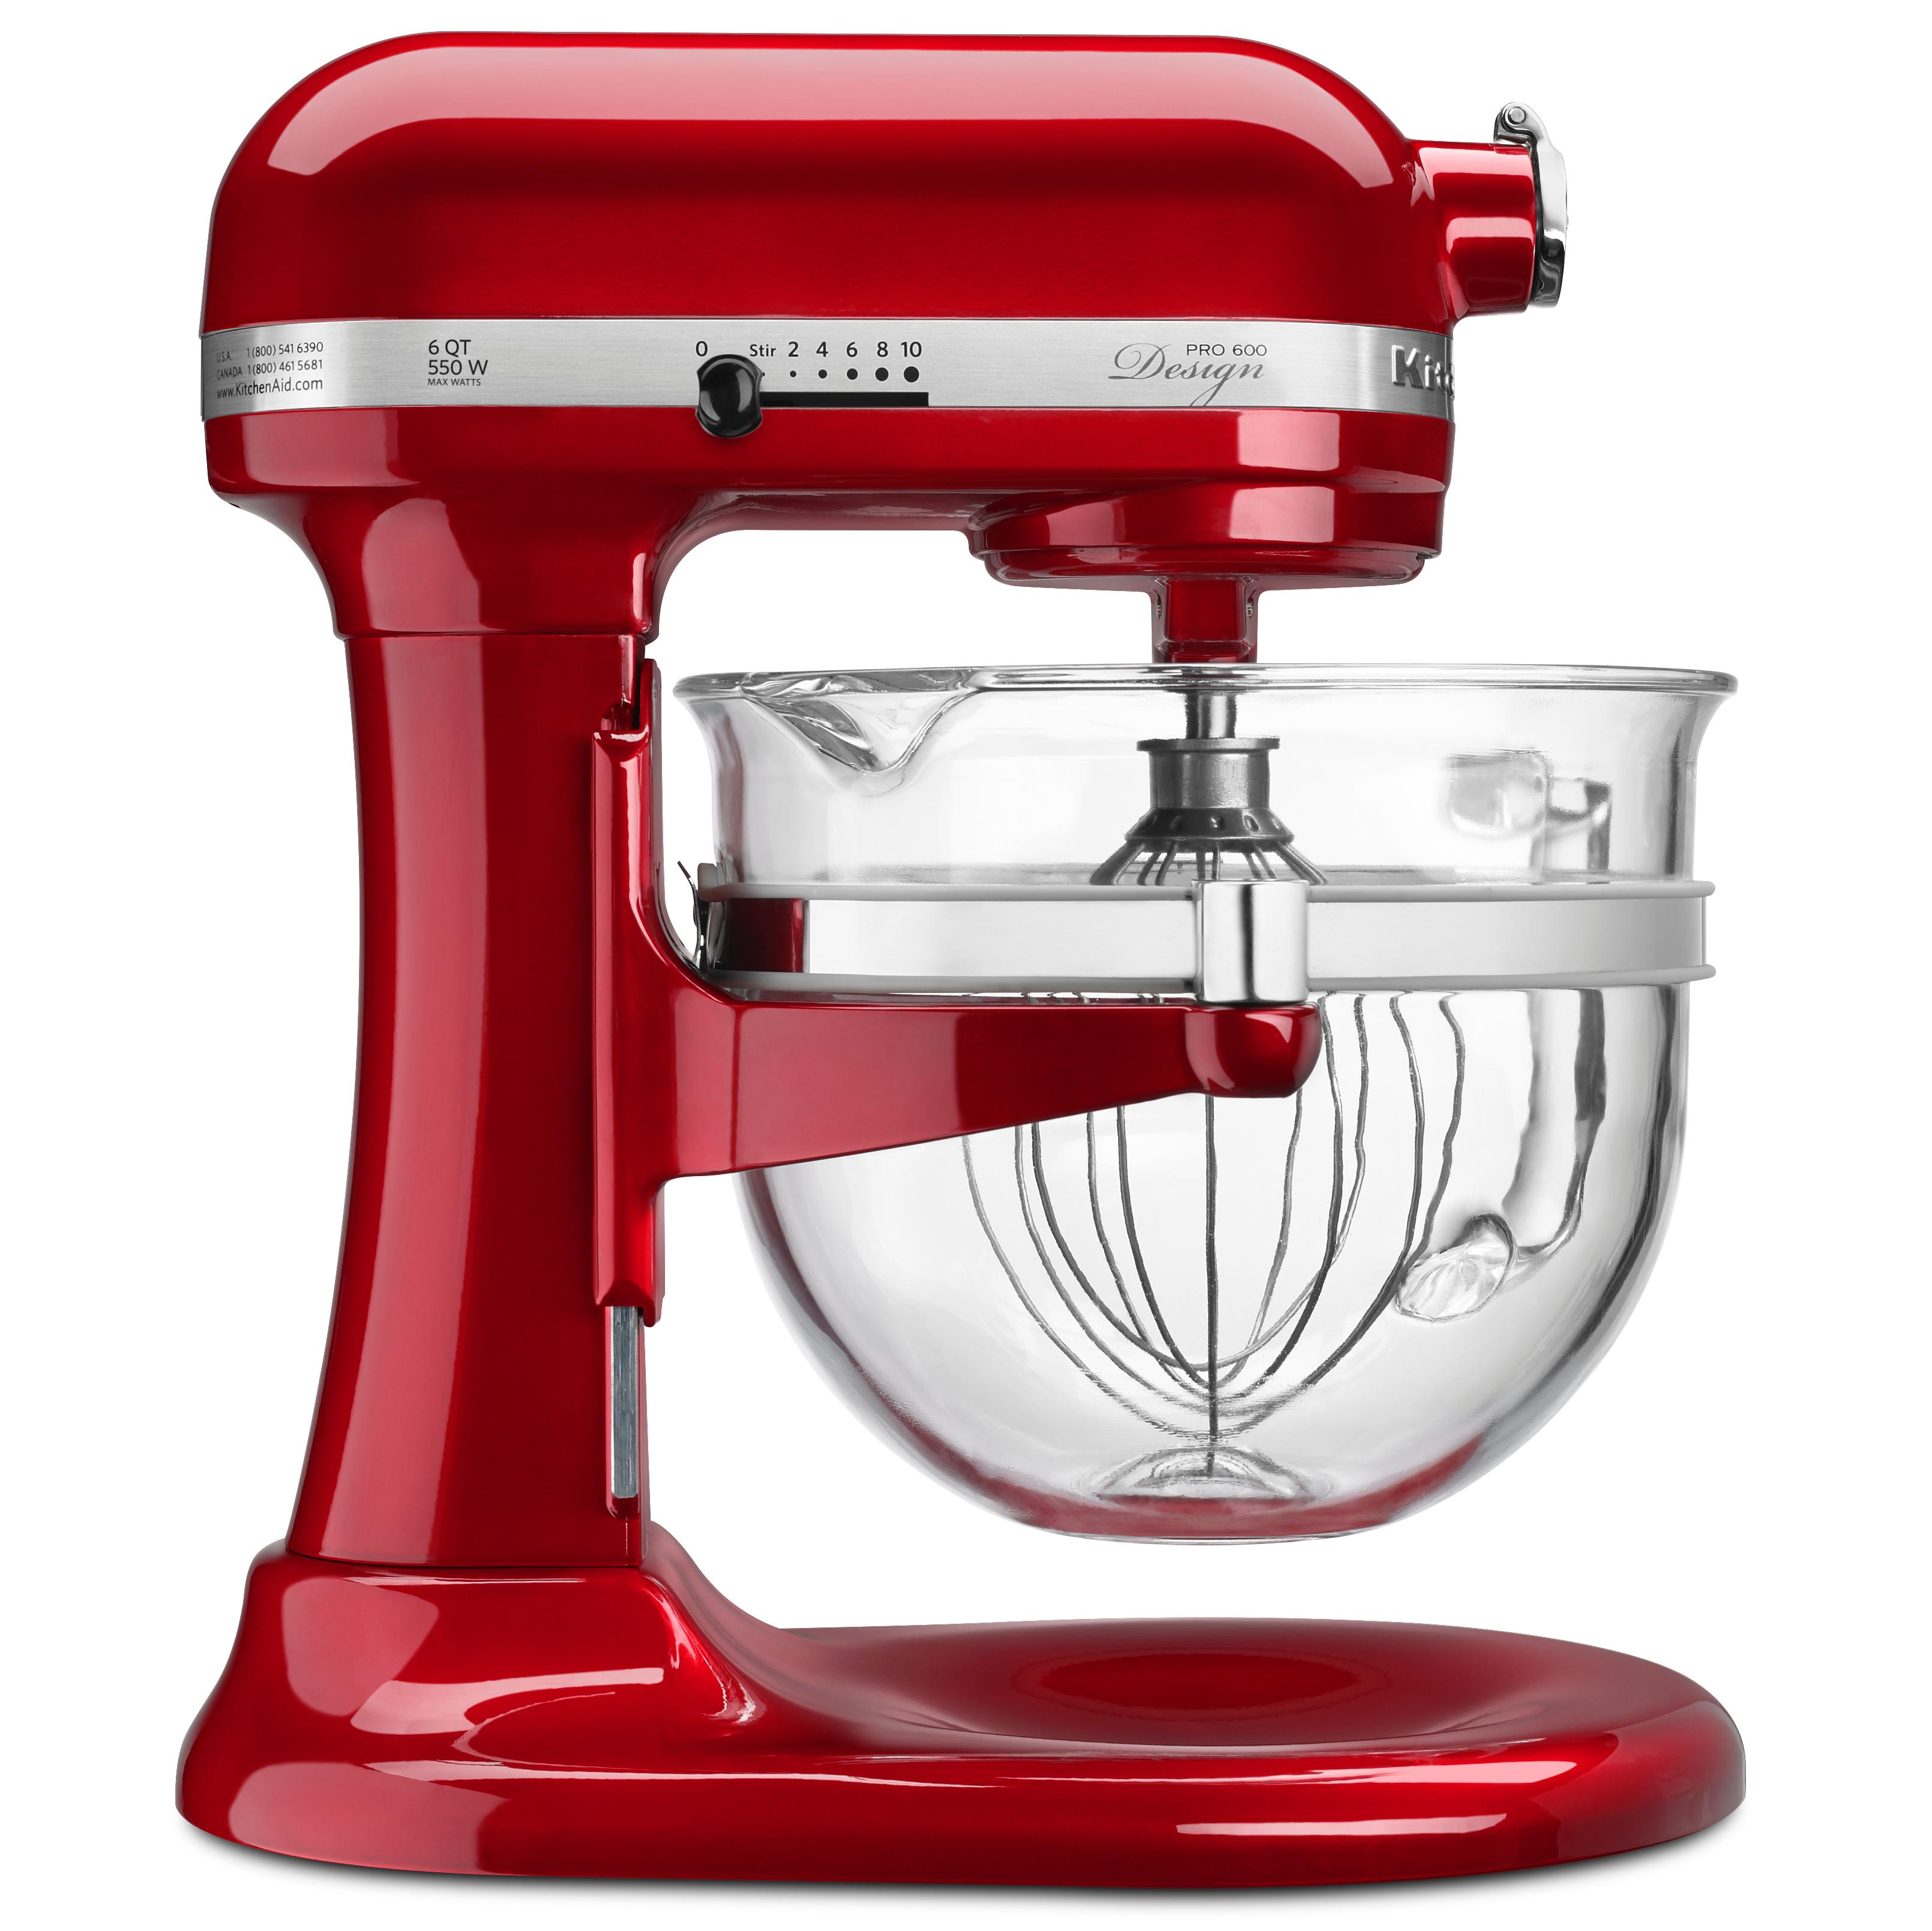 Kitchenaid kf26m22ca 6 qt professional 600 for Kitchenaid f series